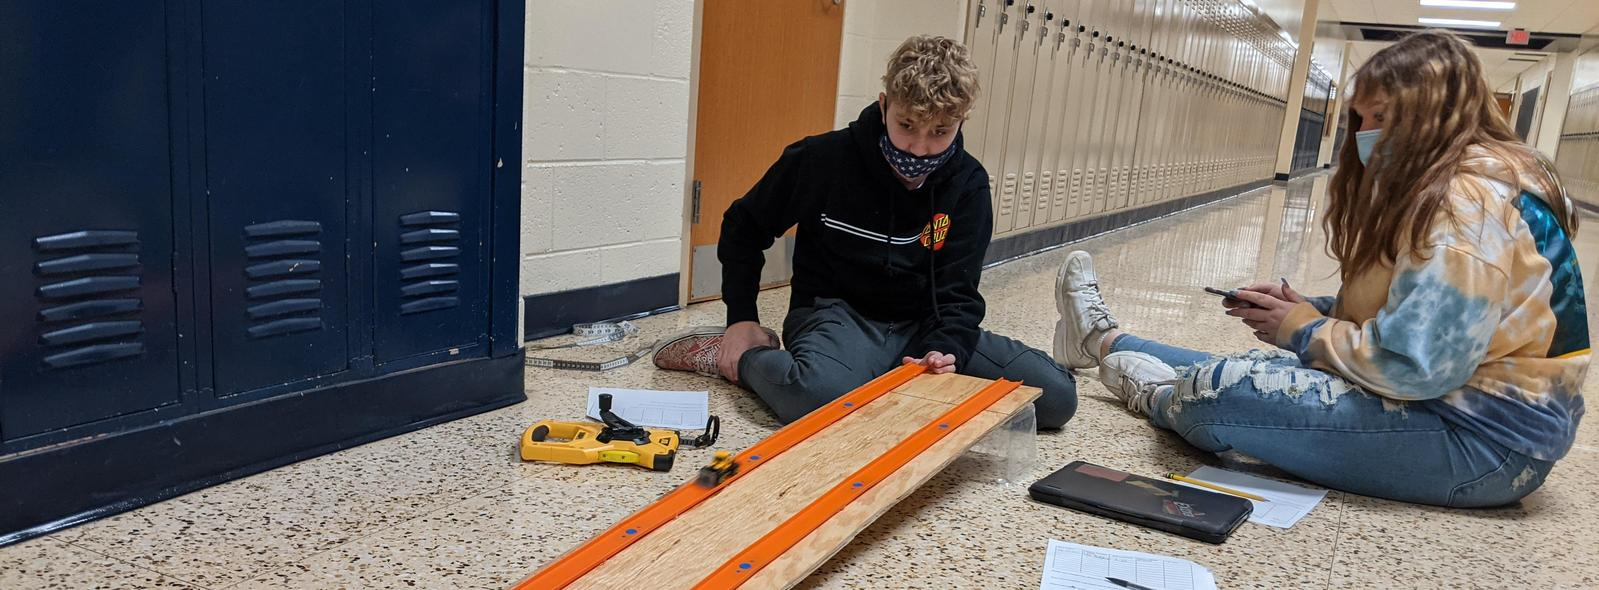 students racing cars on an incline